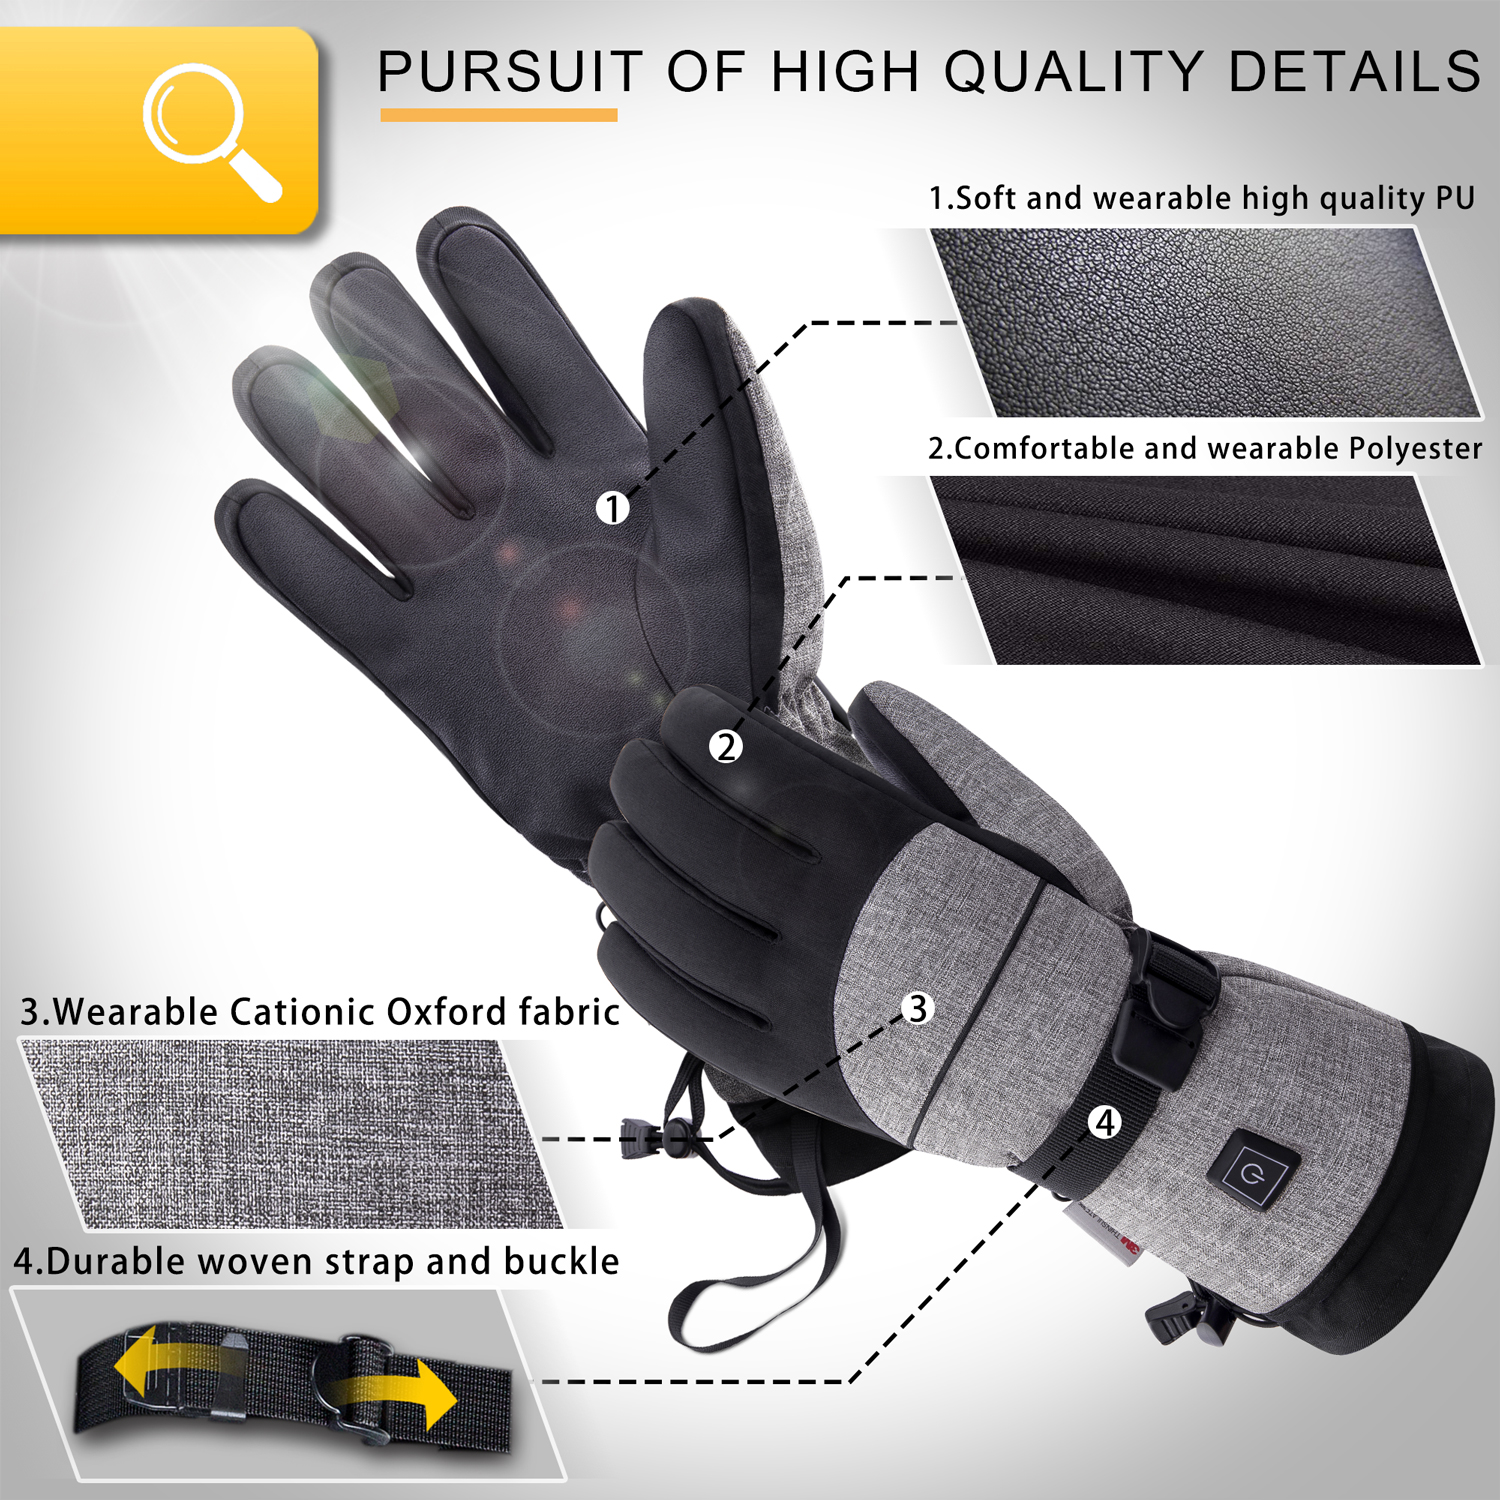 Winter Battery Rechargeable Keep Warm Electric Heating Thermo Gloves Outdoor Hand Warmer Rechargeable Battery 2500mAh 603F- Gray M